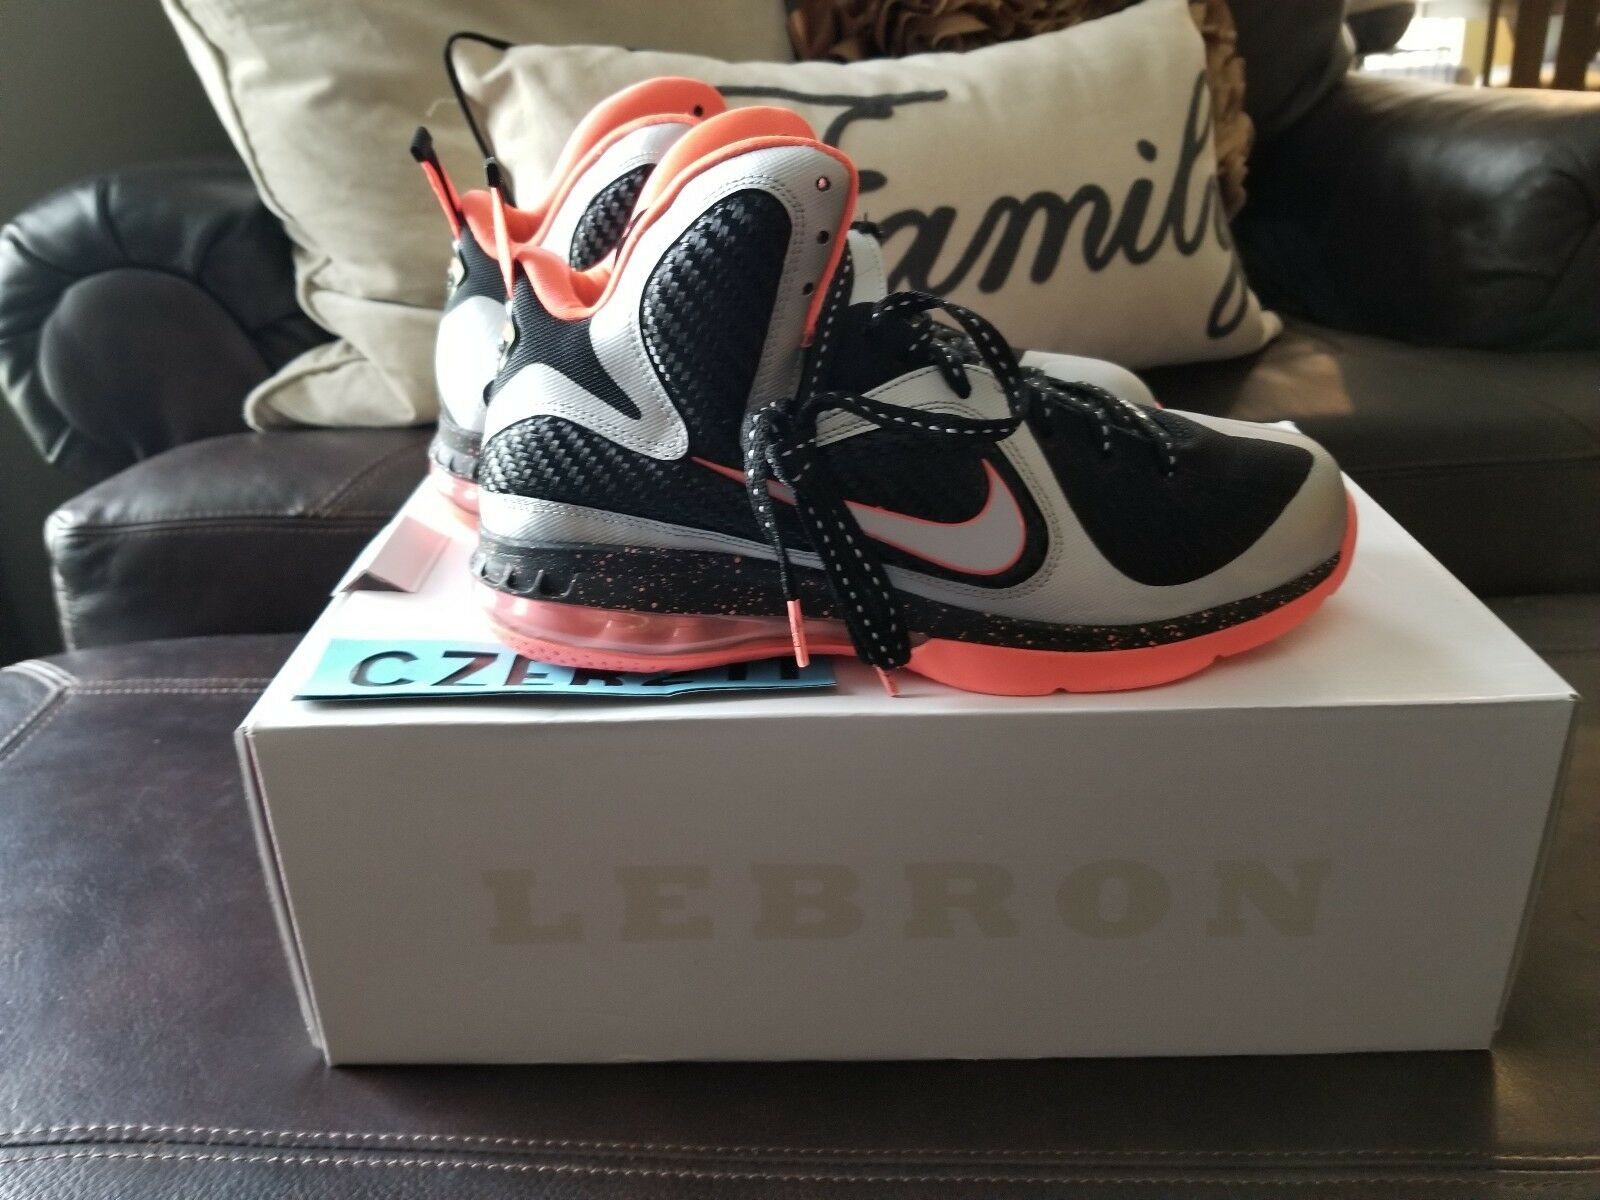 Nike LeBron 9 IX Mango  Basketball shoes Sz. 9 orange Black Silver South Beach